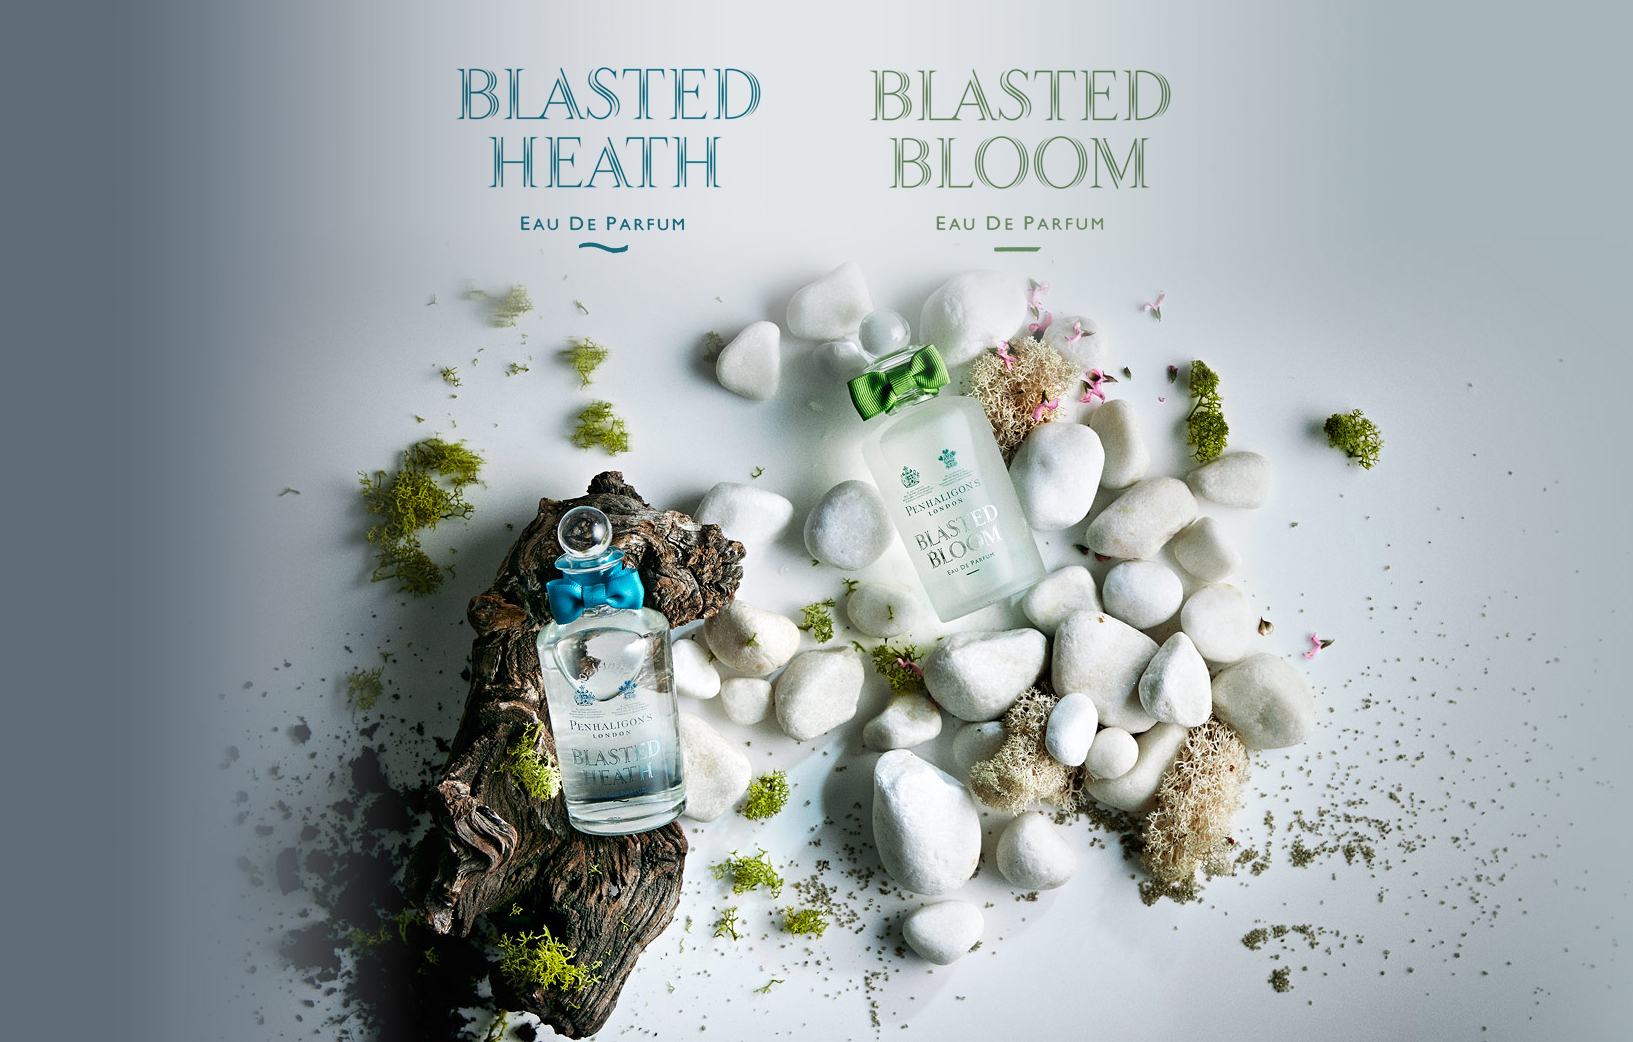 BLASTED HEATH/BLOOM